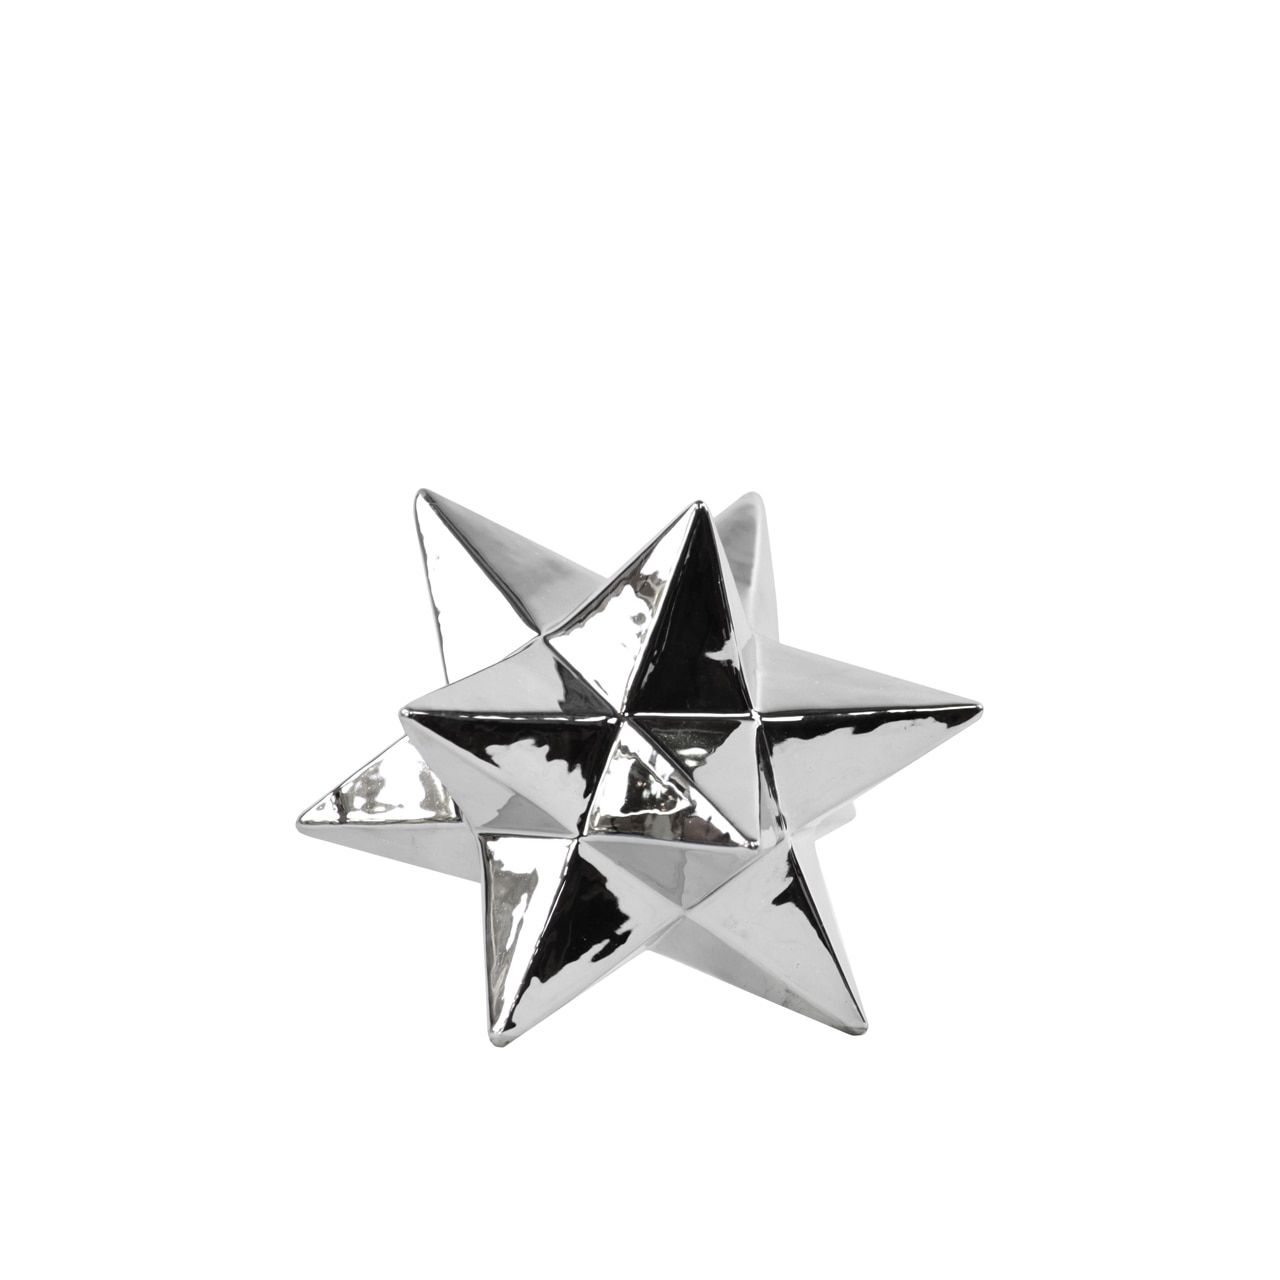 Urban Trends Collection 12 Point Great Icosahedron Sculpture SM Polished Chrome